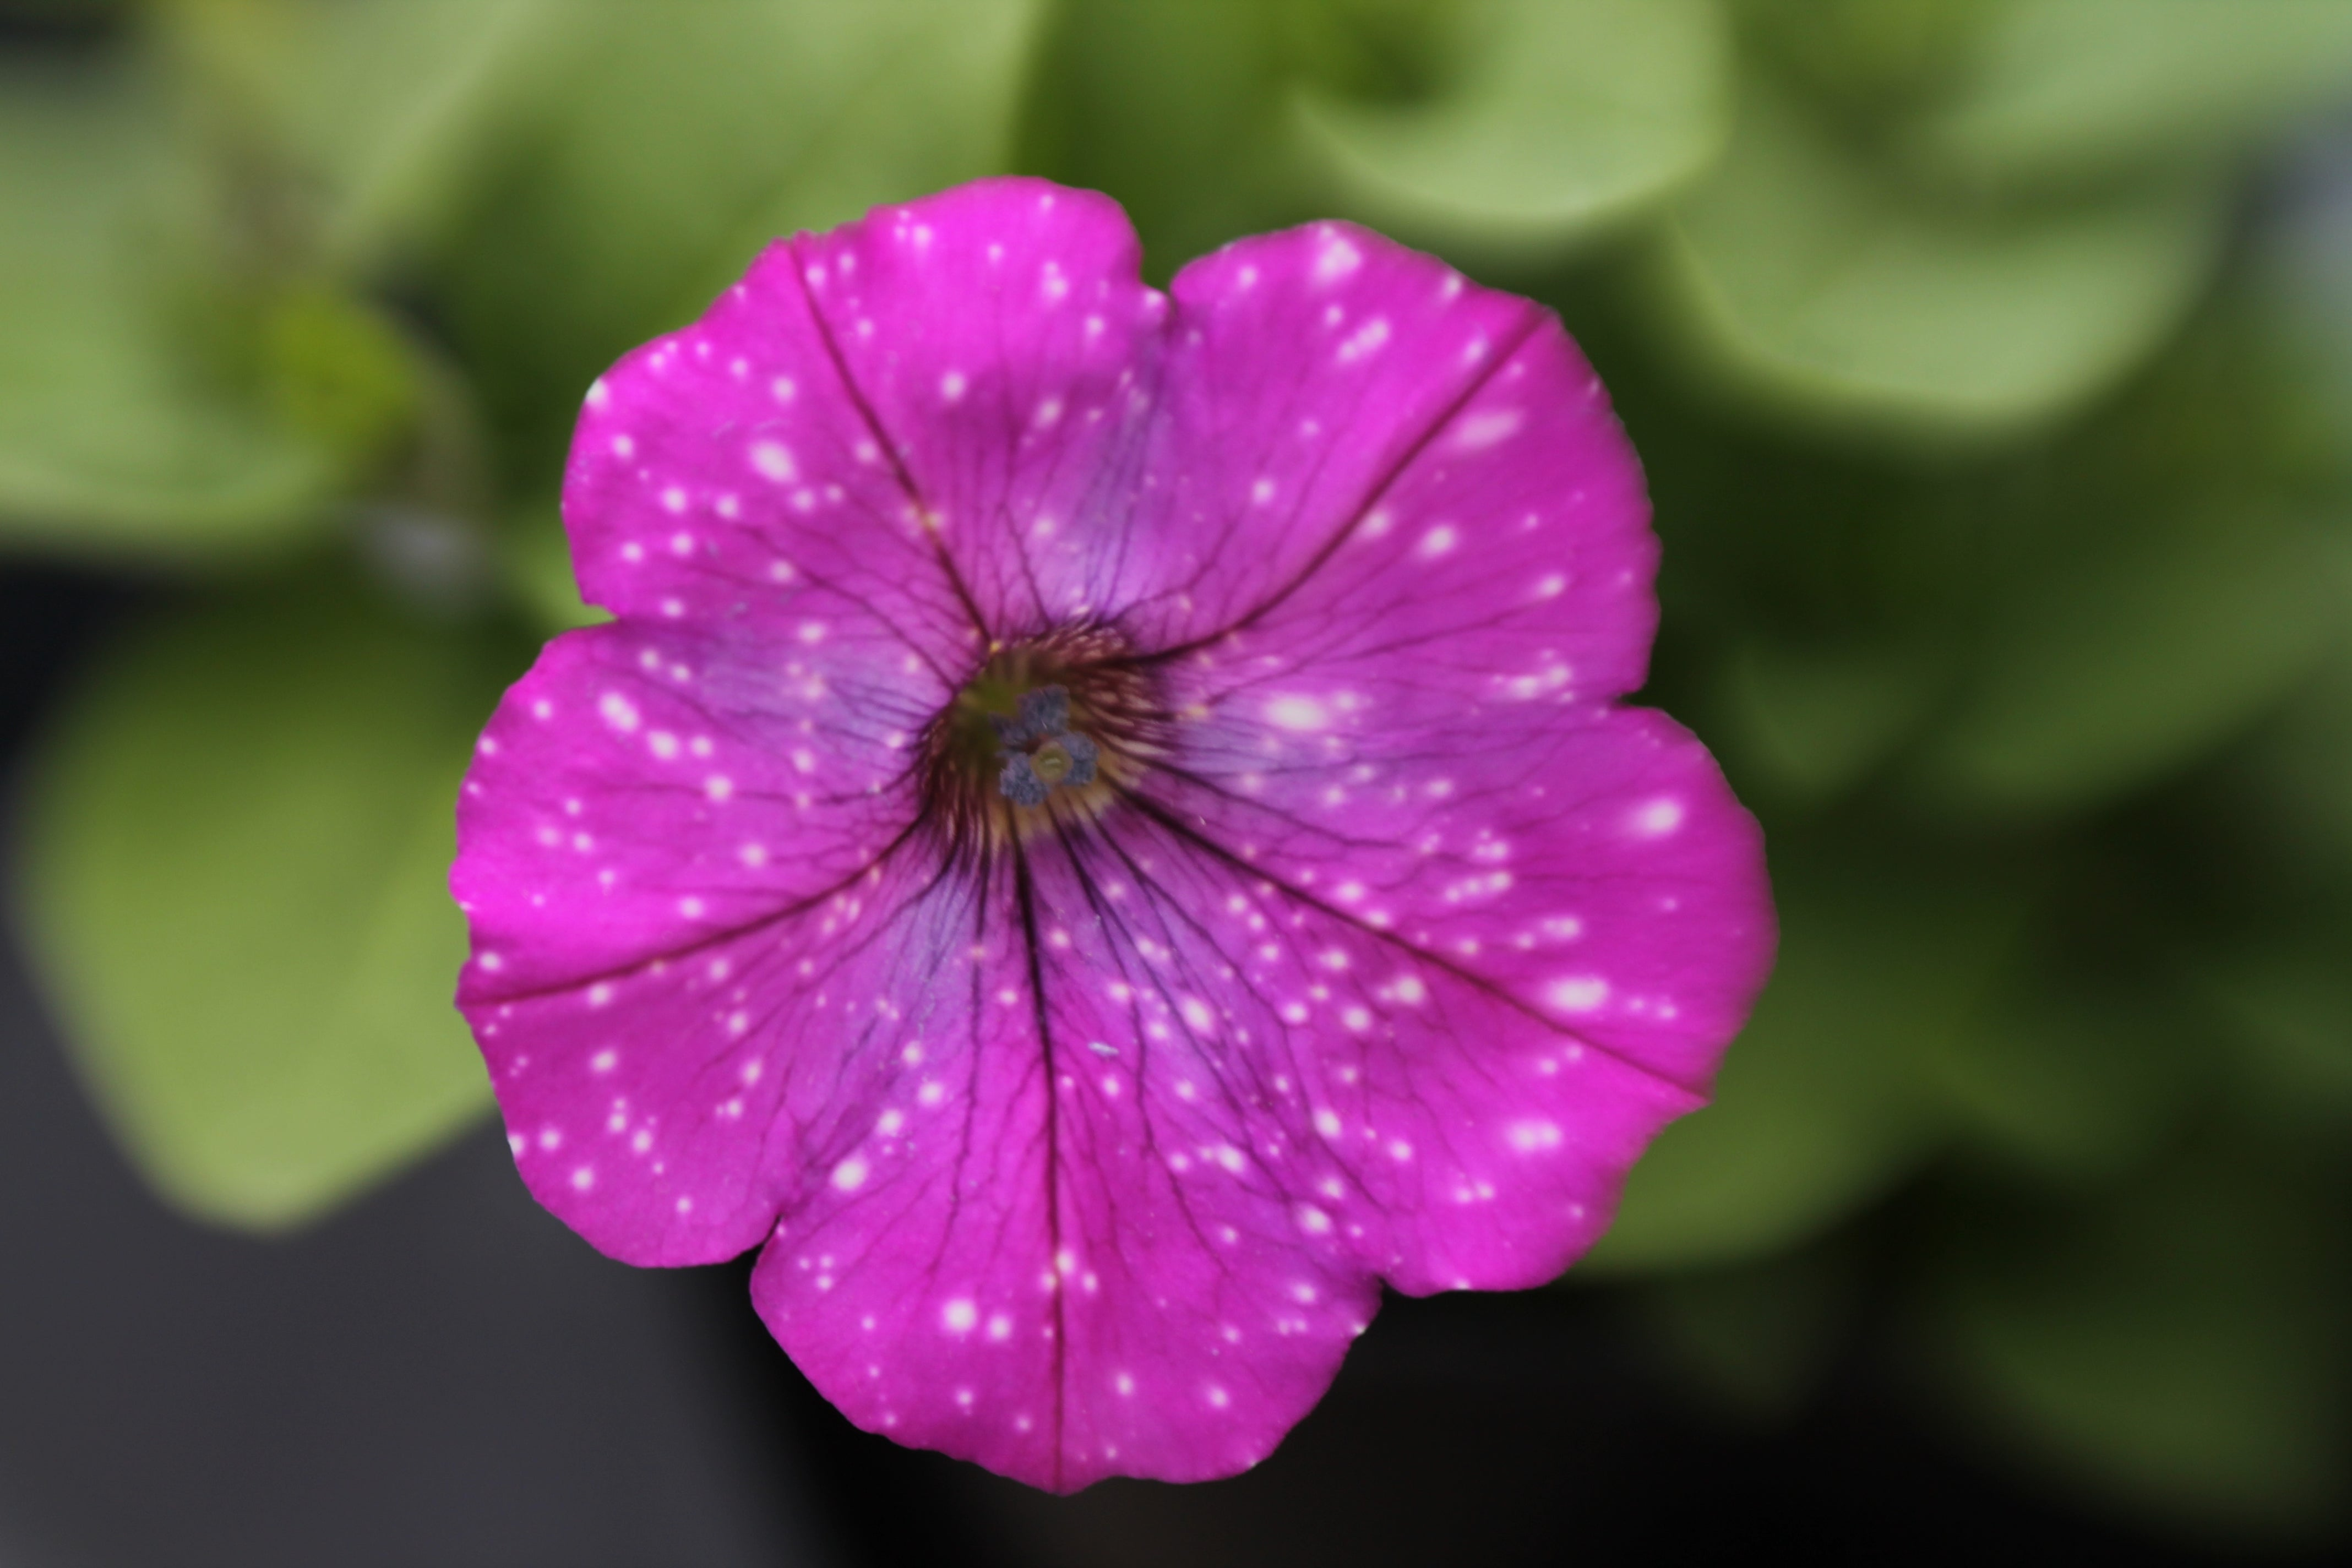 pink flower with white dots macro photography nature Amy Cyphers